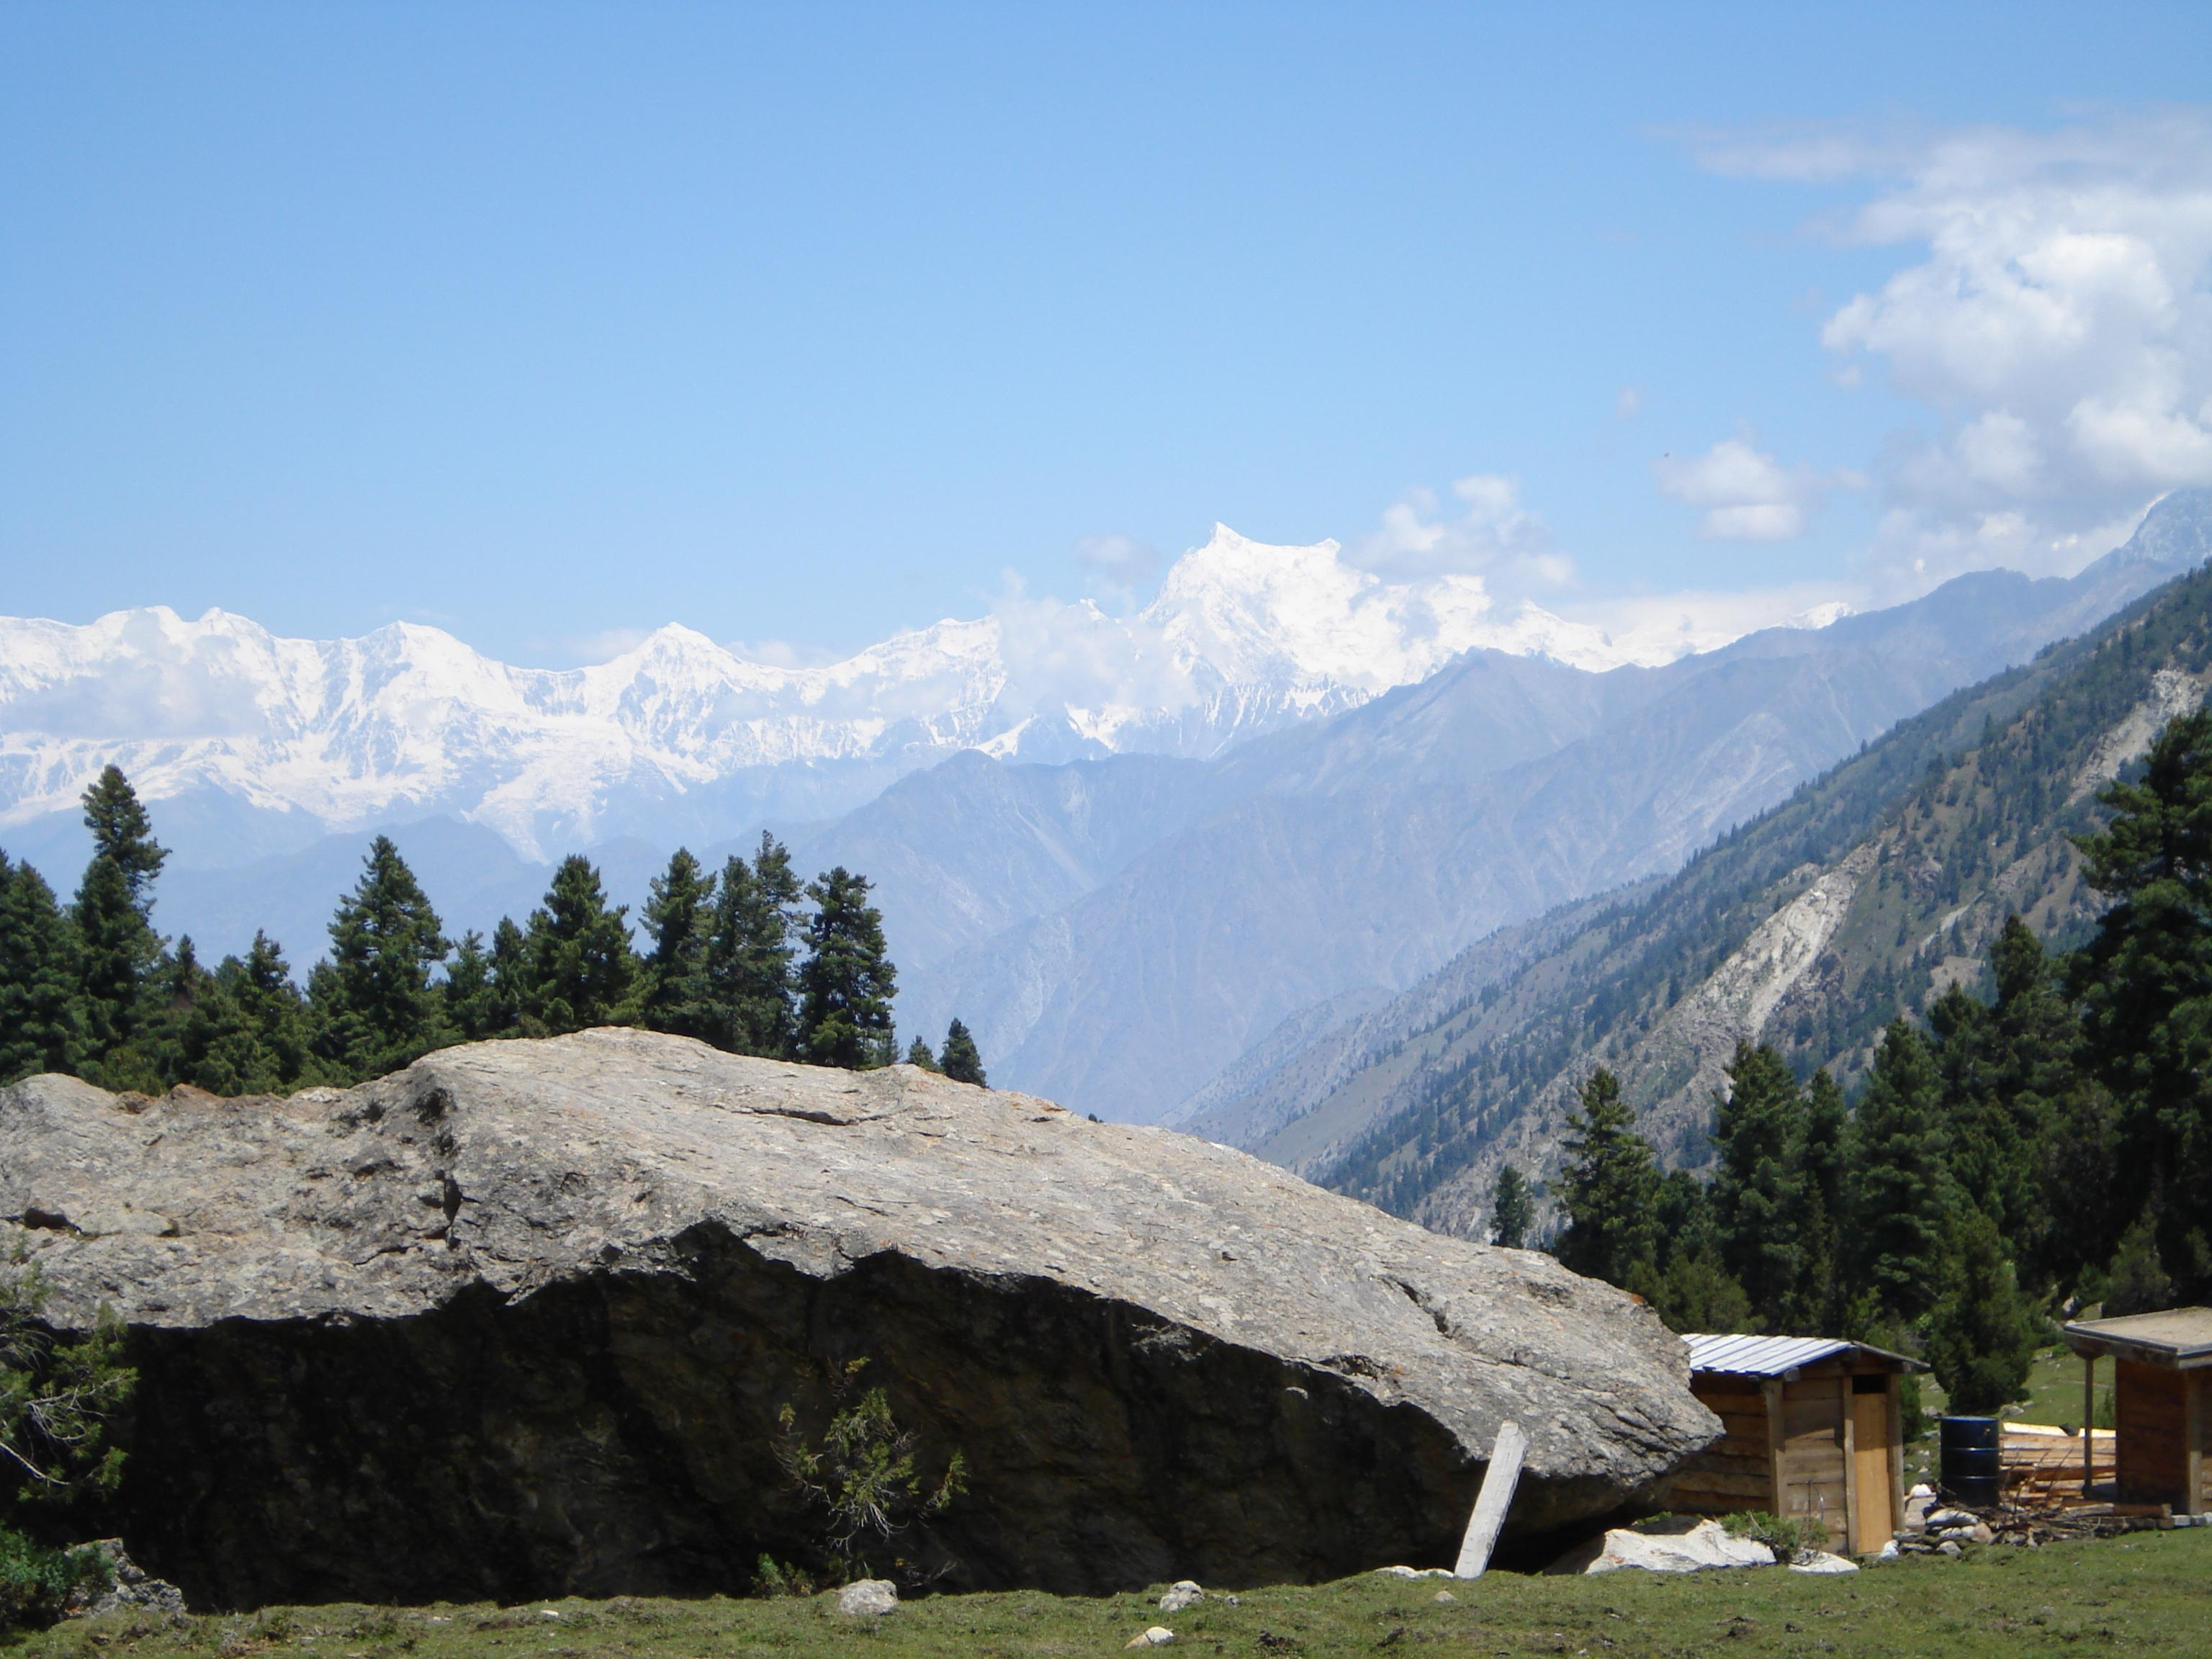 Fairy Meadows, Cliff, Clouds, Fairymeadows, Hills, HQ Photo